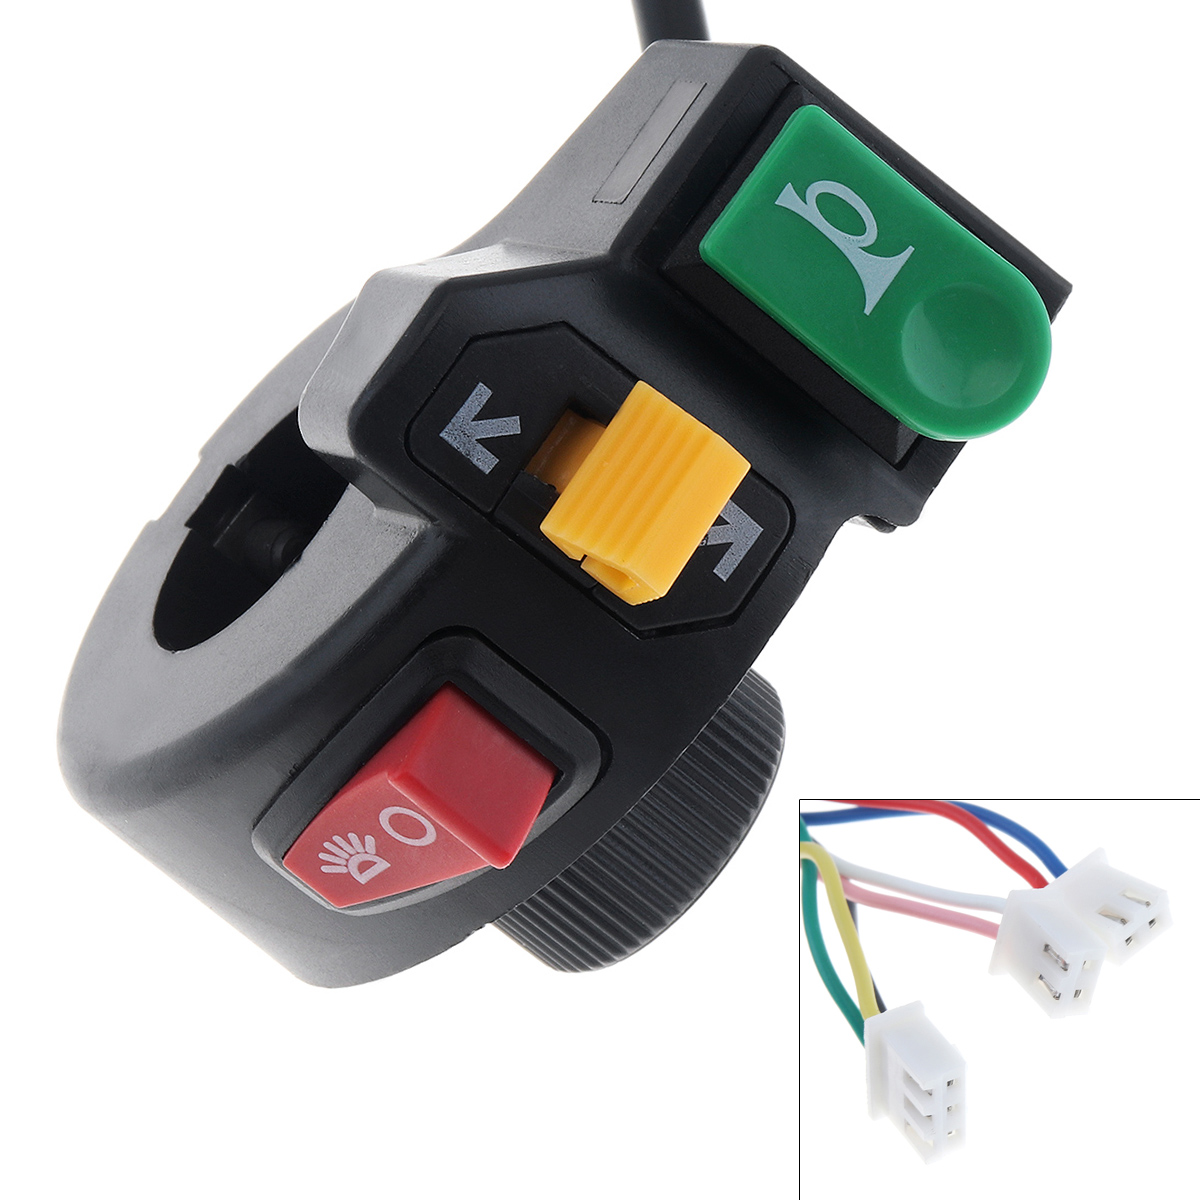 3 in 1 Motorcycle <font><b>Switch</b></font> Electric <font><b>Bike</b></font> Scooter ATV Quad Light Turn Signal Horn ON/OFF Button for 22mm Dia <font><b>Handlebars</b></font> image